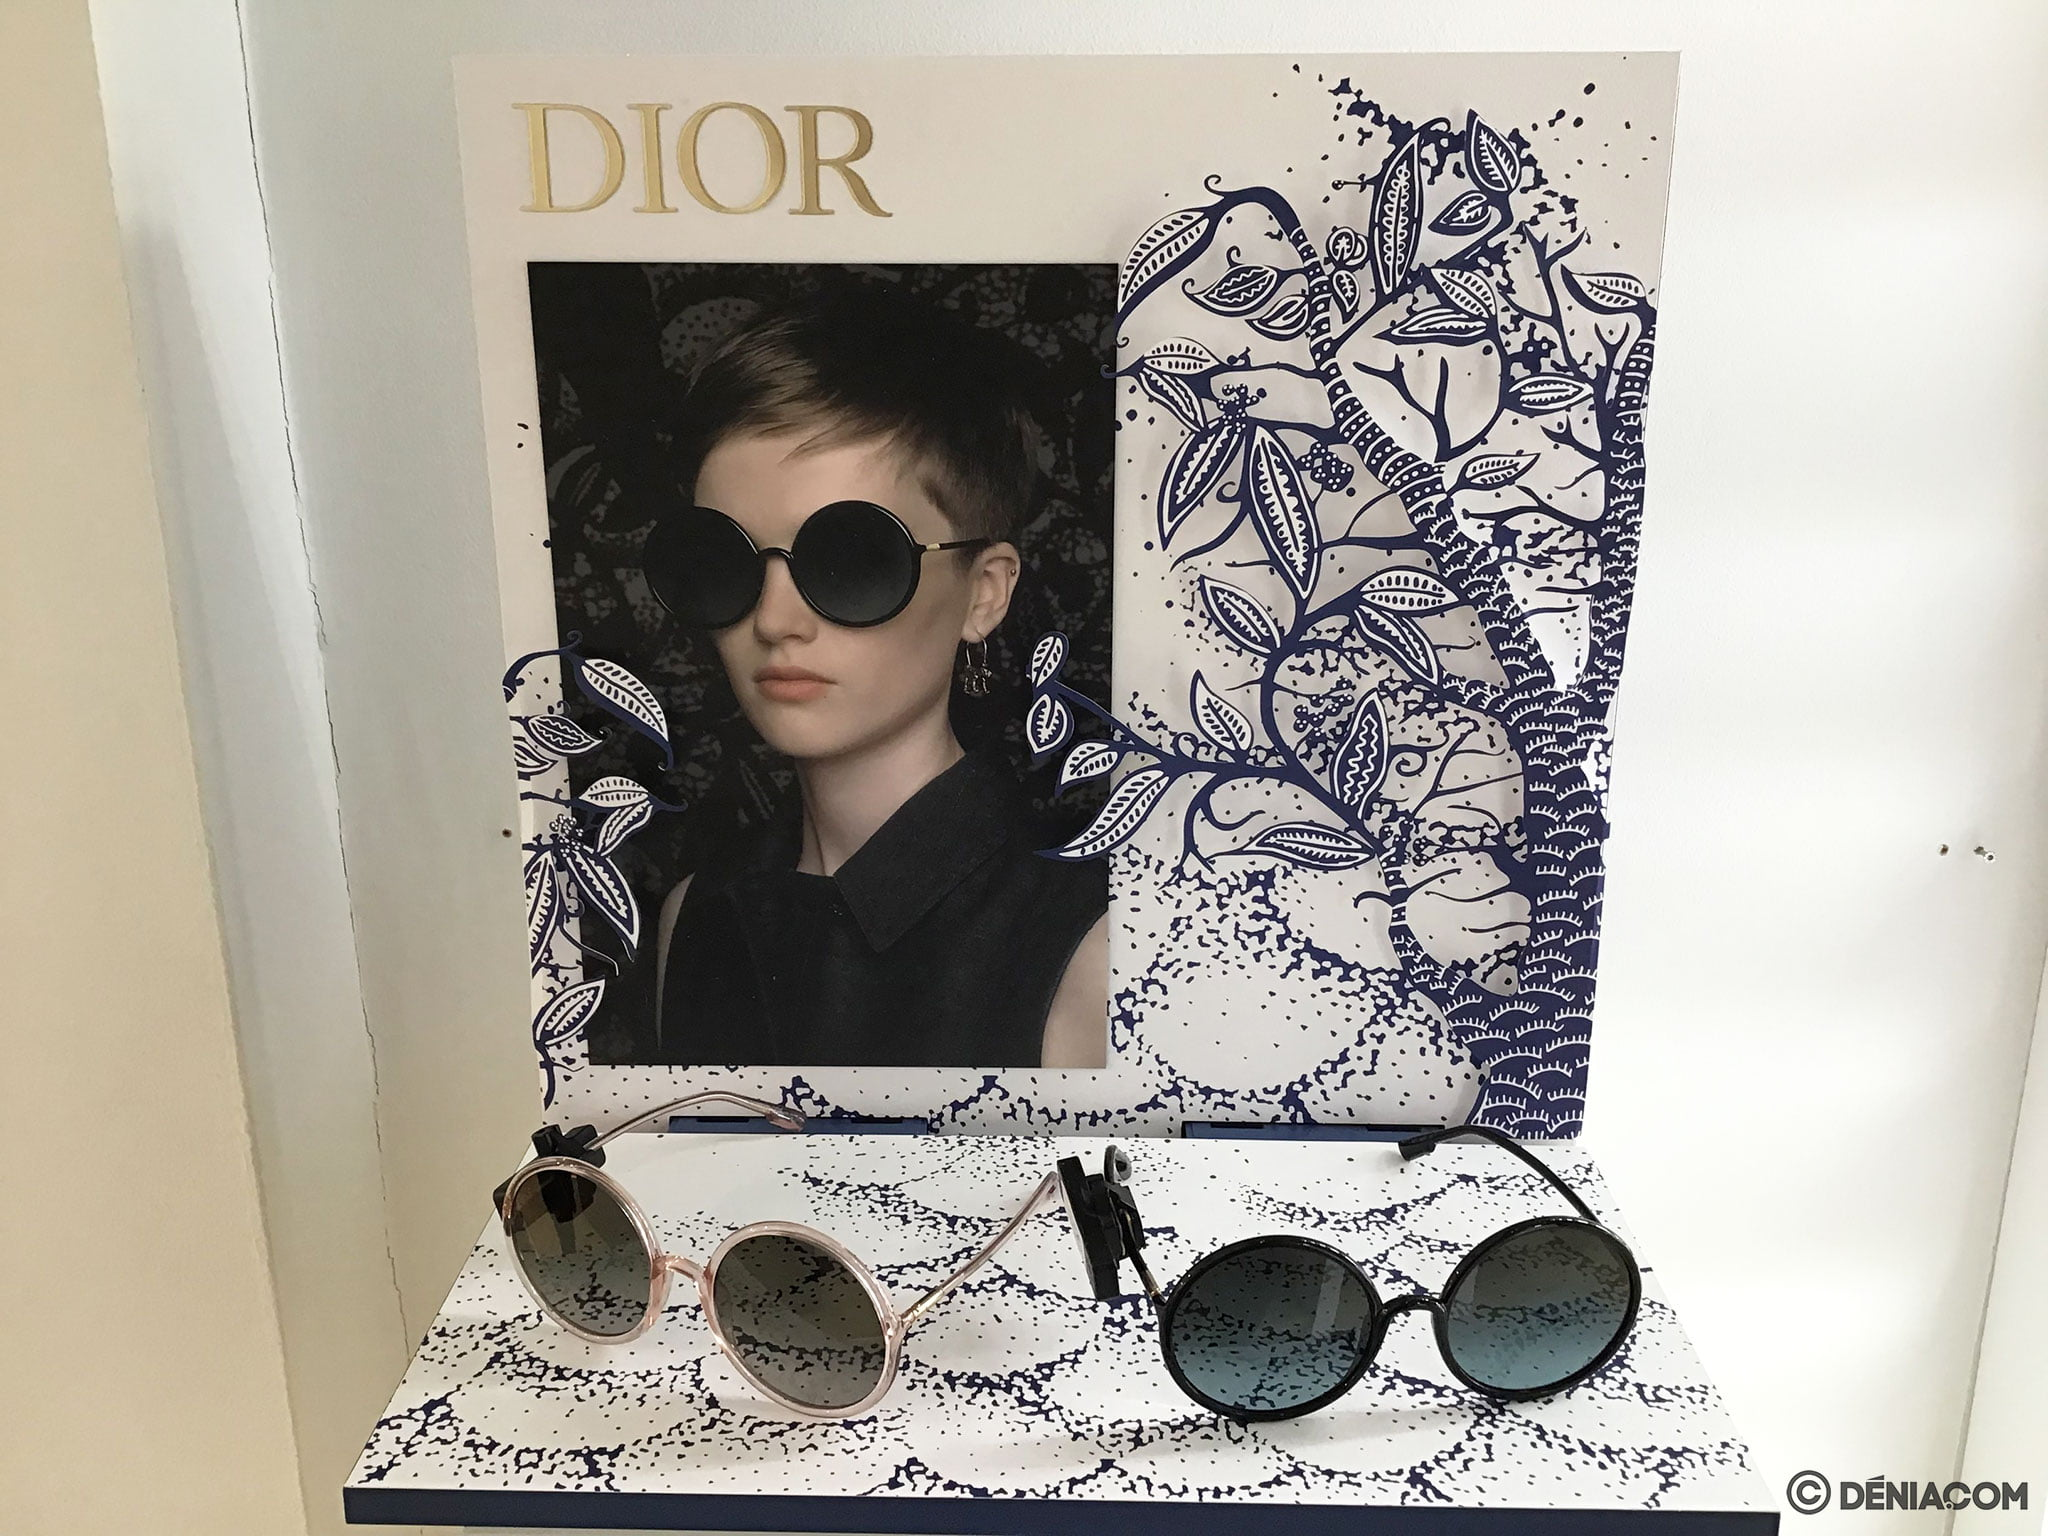 Dior glasses in Dénia - Benjamín Optics